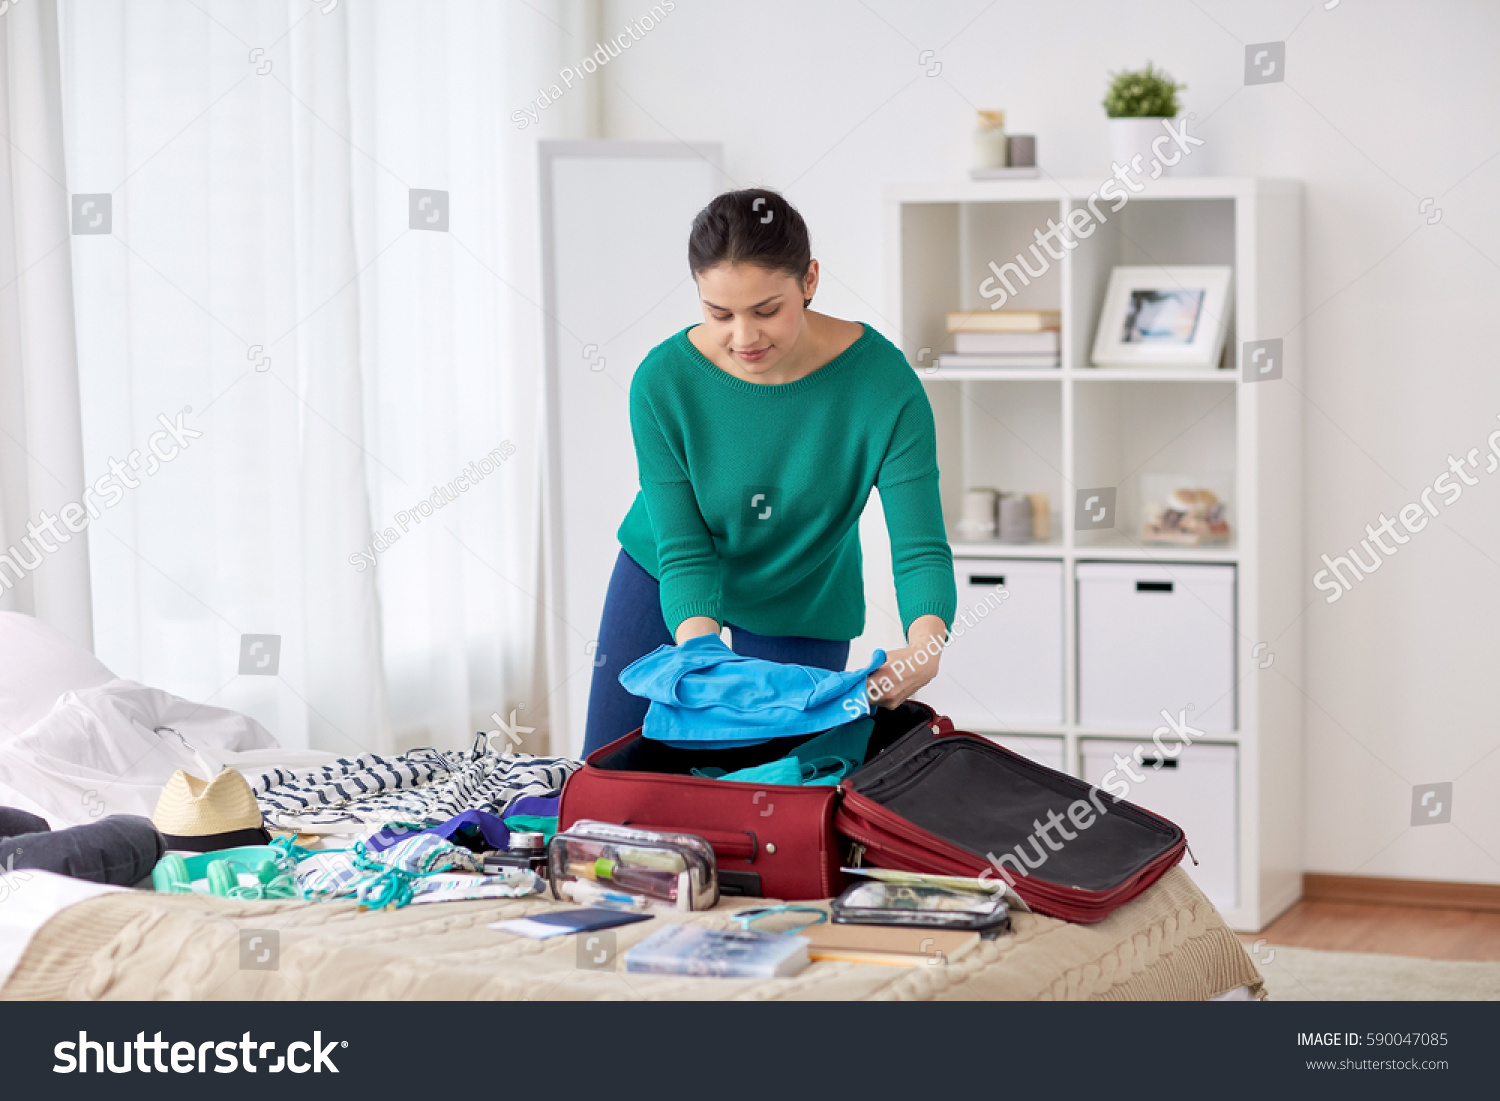 Tourism People Luggage Concept Happy Young Stock Photo ...